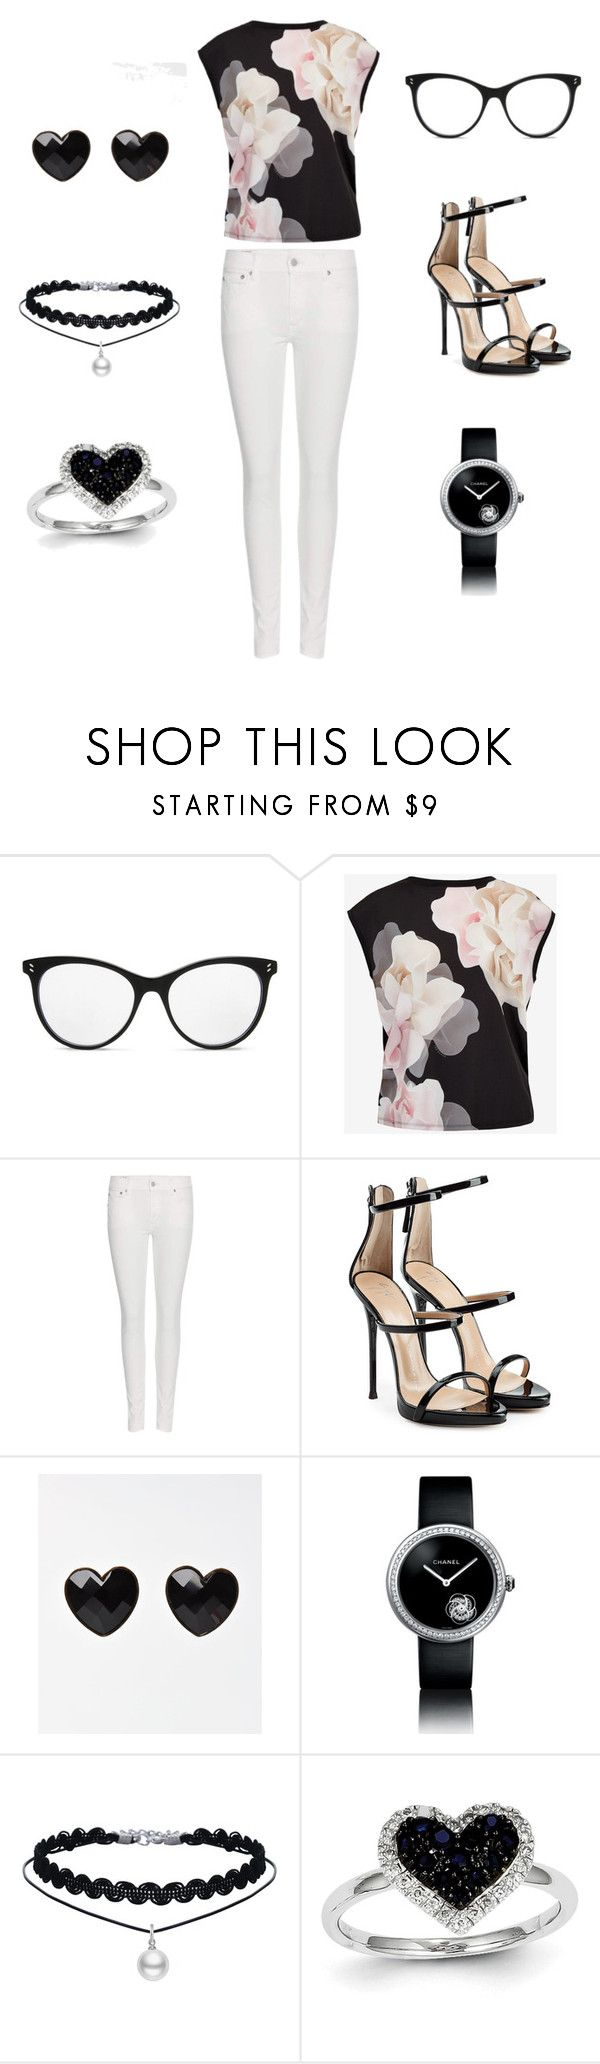 """Untitled #33"" by maya2005 ❤ liked on Polyvore featuring STELLA McCARTNEY, Ted Baker, Polo Ralph Lauren, Giuseppe Zanotti, Chanel and Kevin Jewelers"